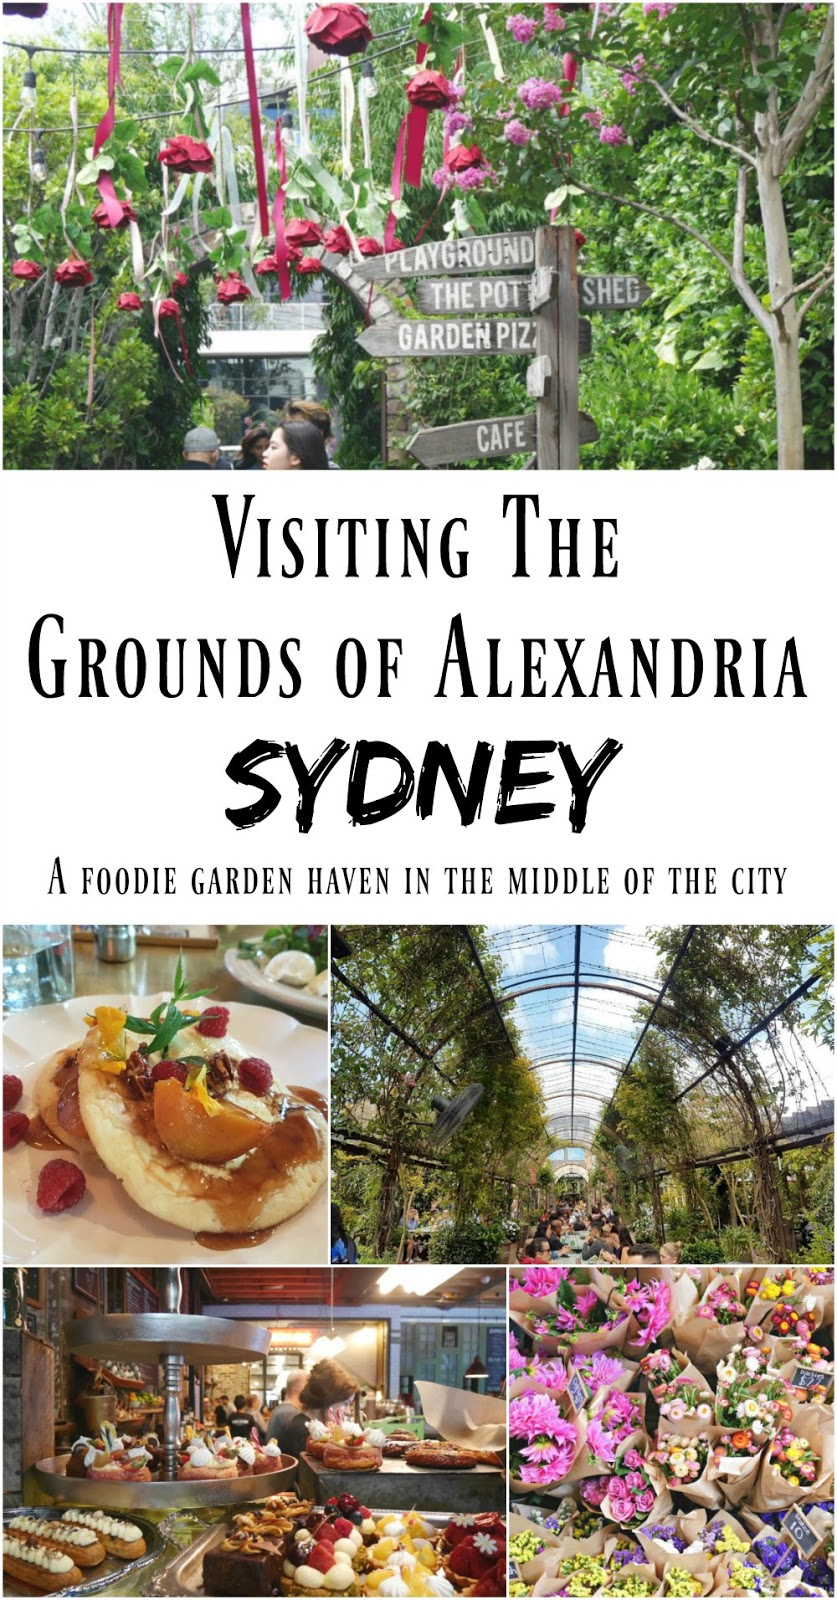 PIN FOR LATER: Visiting the Grounds of Alexandria is a must-do when you visit Sydney Australia! It's nestled in the middle of the city and is a haven for foodies and garden lovers. It's a beautiful place perfect for everyone, but make sure you go hungry!